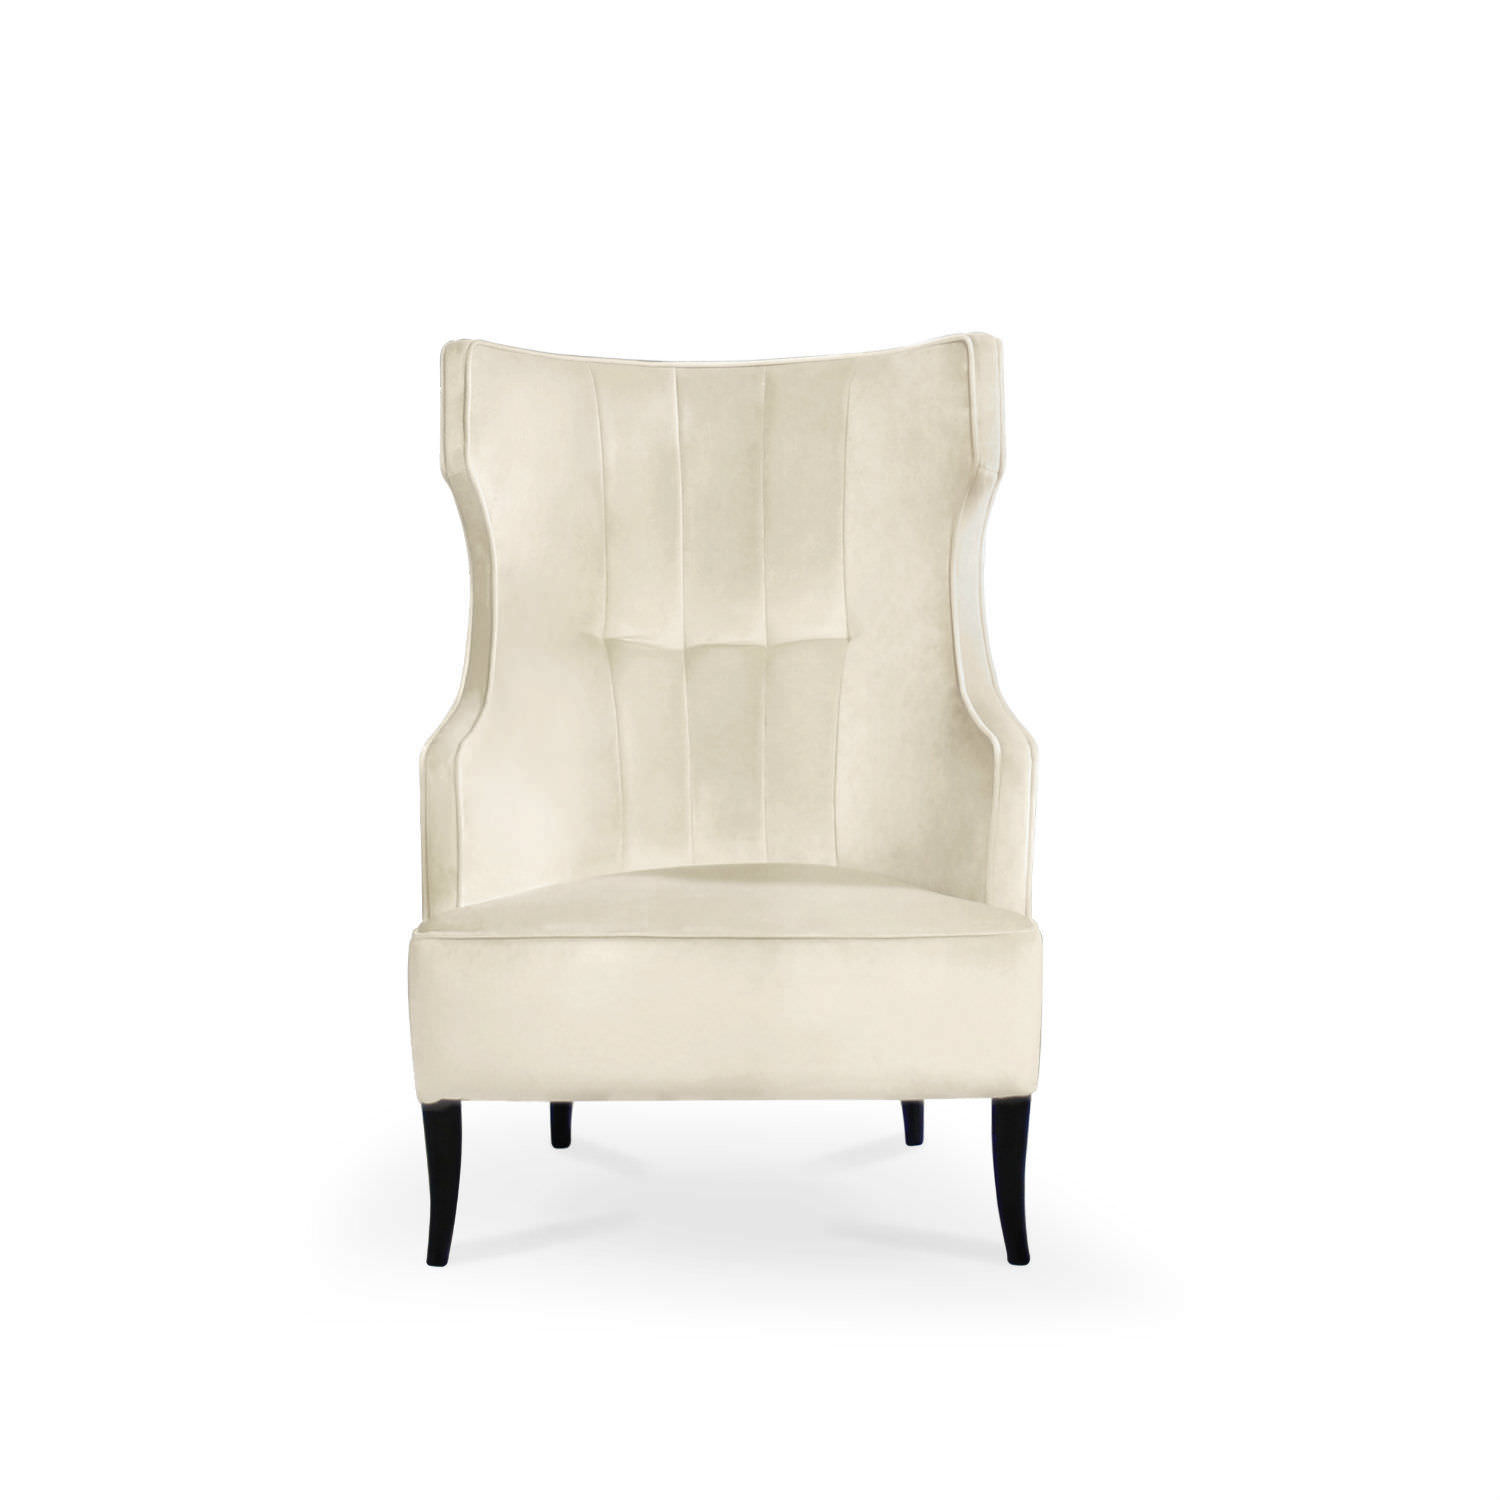 Iguazu Chair - Products